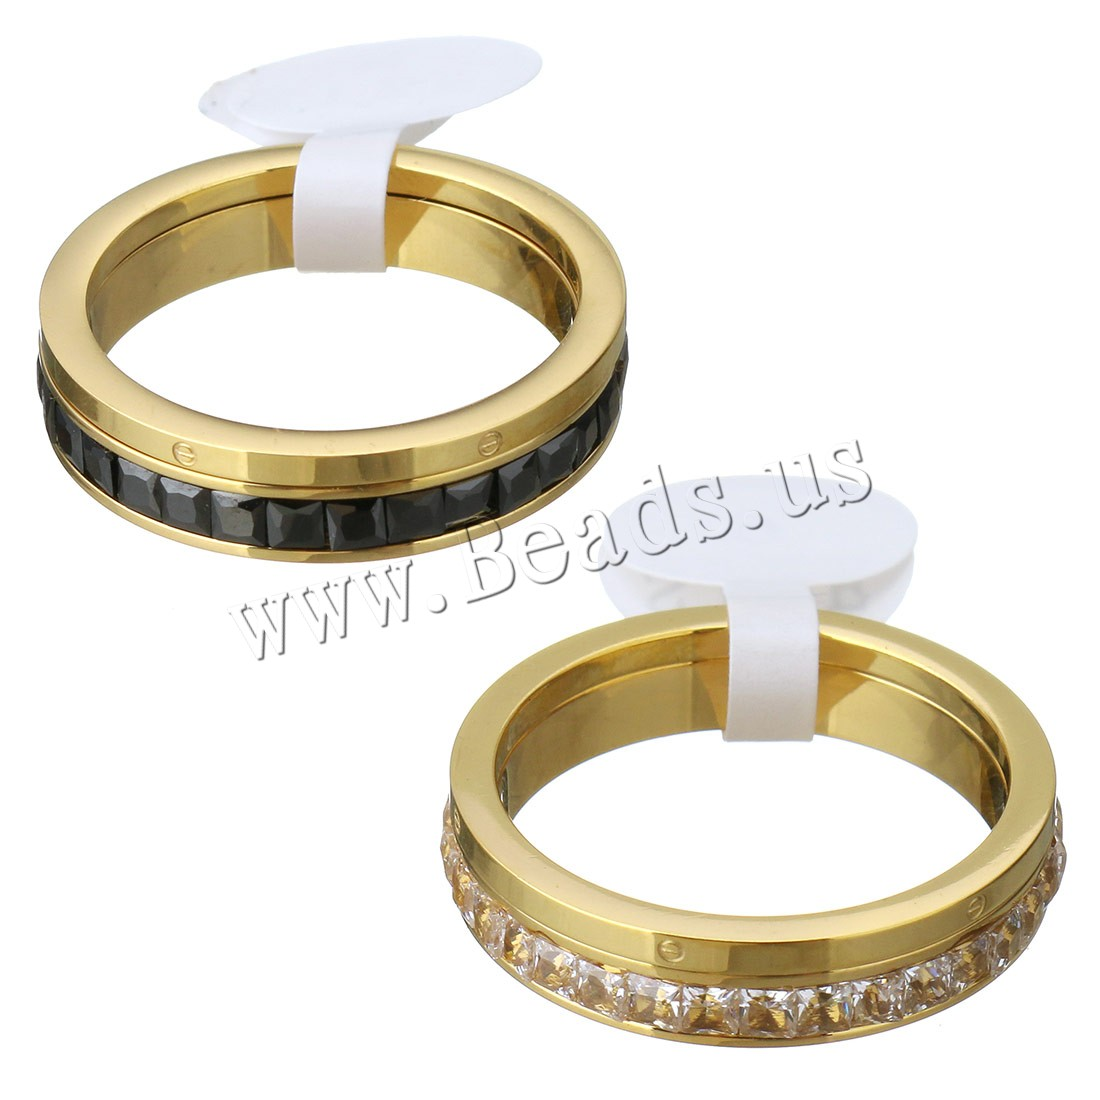 Buy Crystal Stainless Steel Finger Ring Crystal gold color plated different size choice & woman & faceted colors choice 1.5mm 3.5mm 2PCs/Set Sold Set